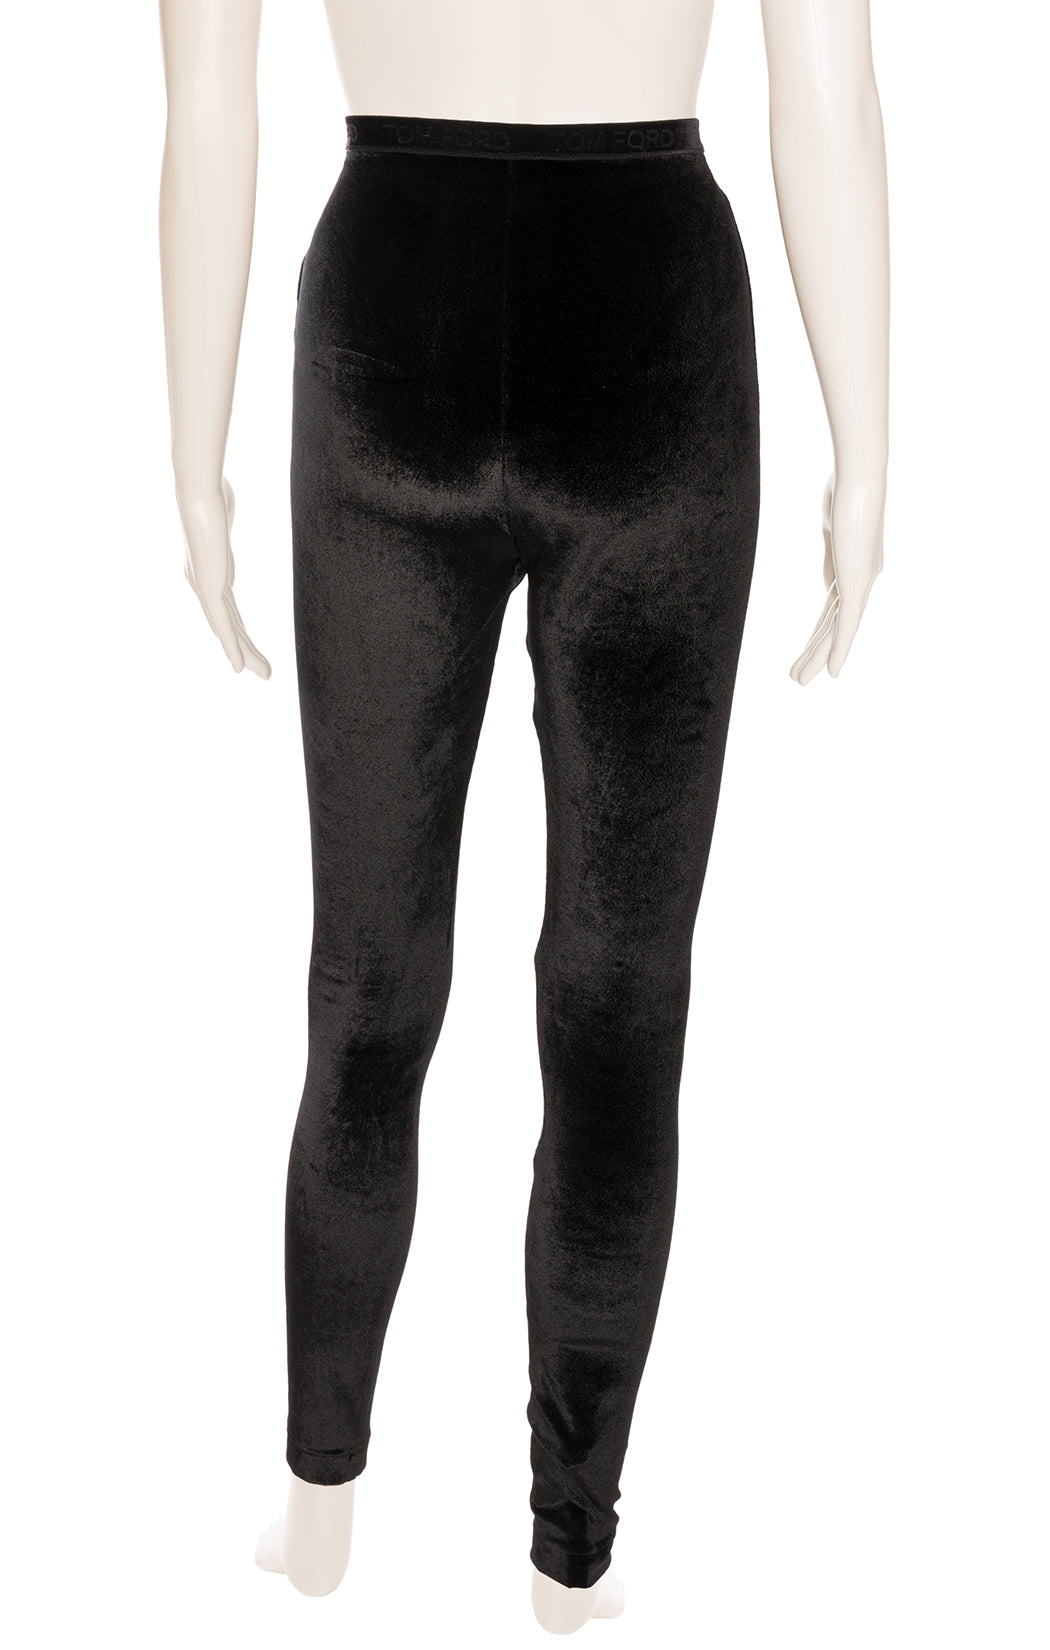 TOM FORD  Leggings Size: Medium